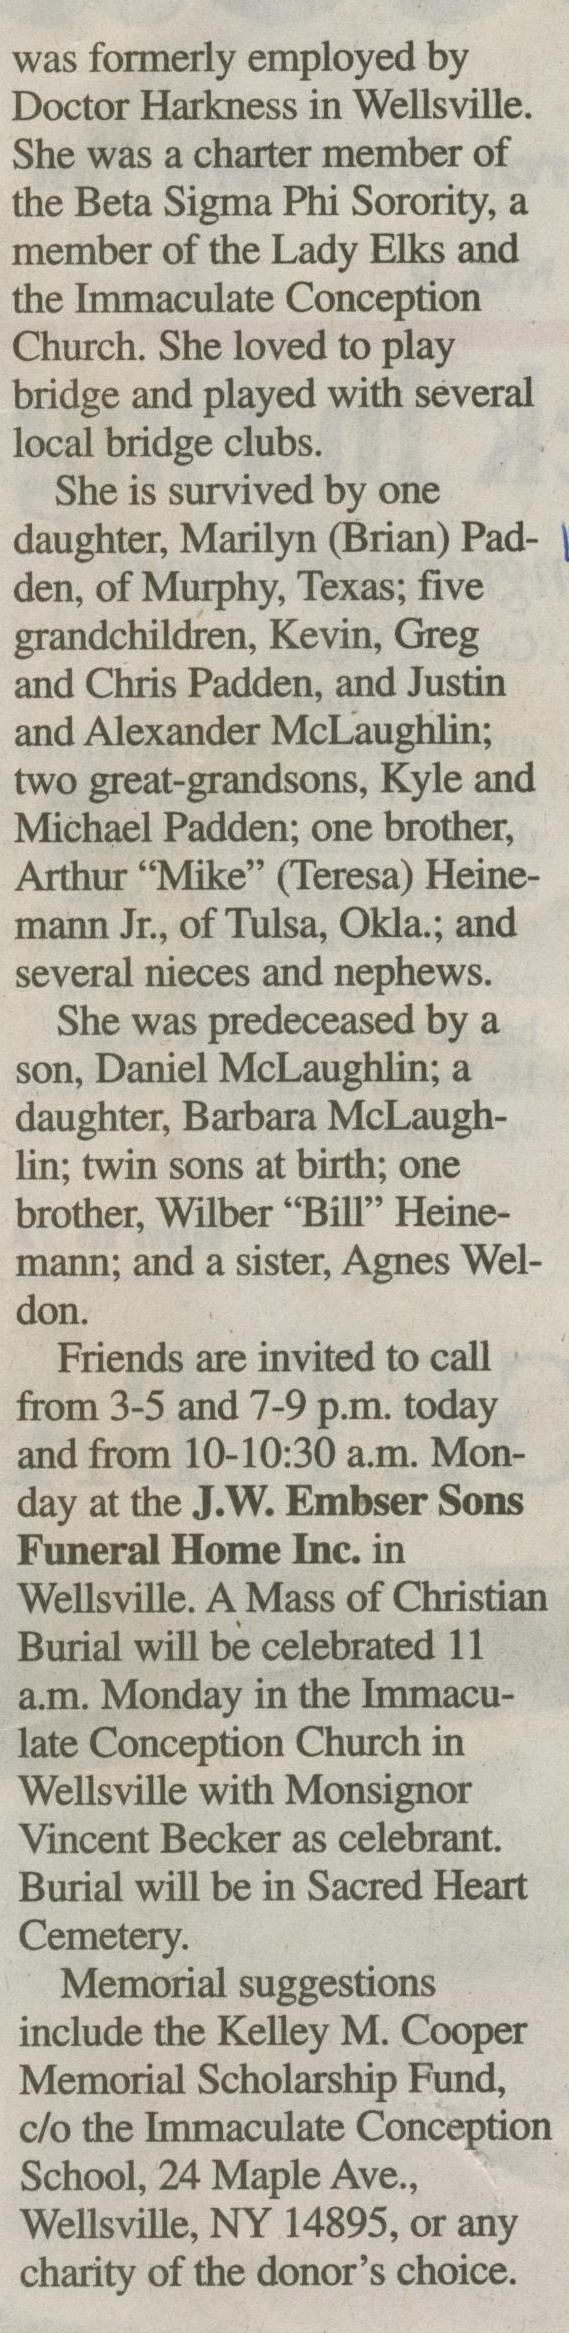 obit Ruth Heinemann McLaughlin 2